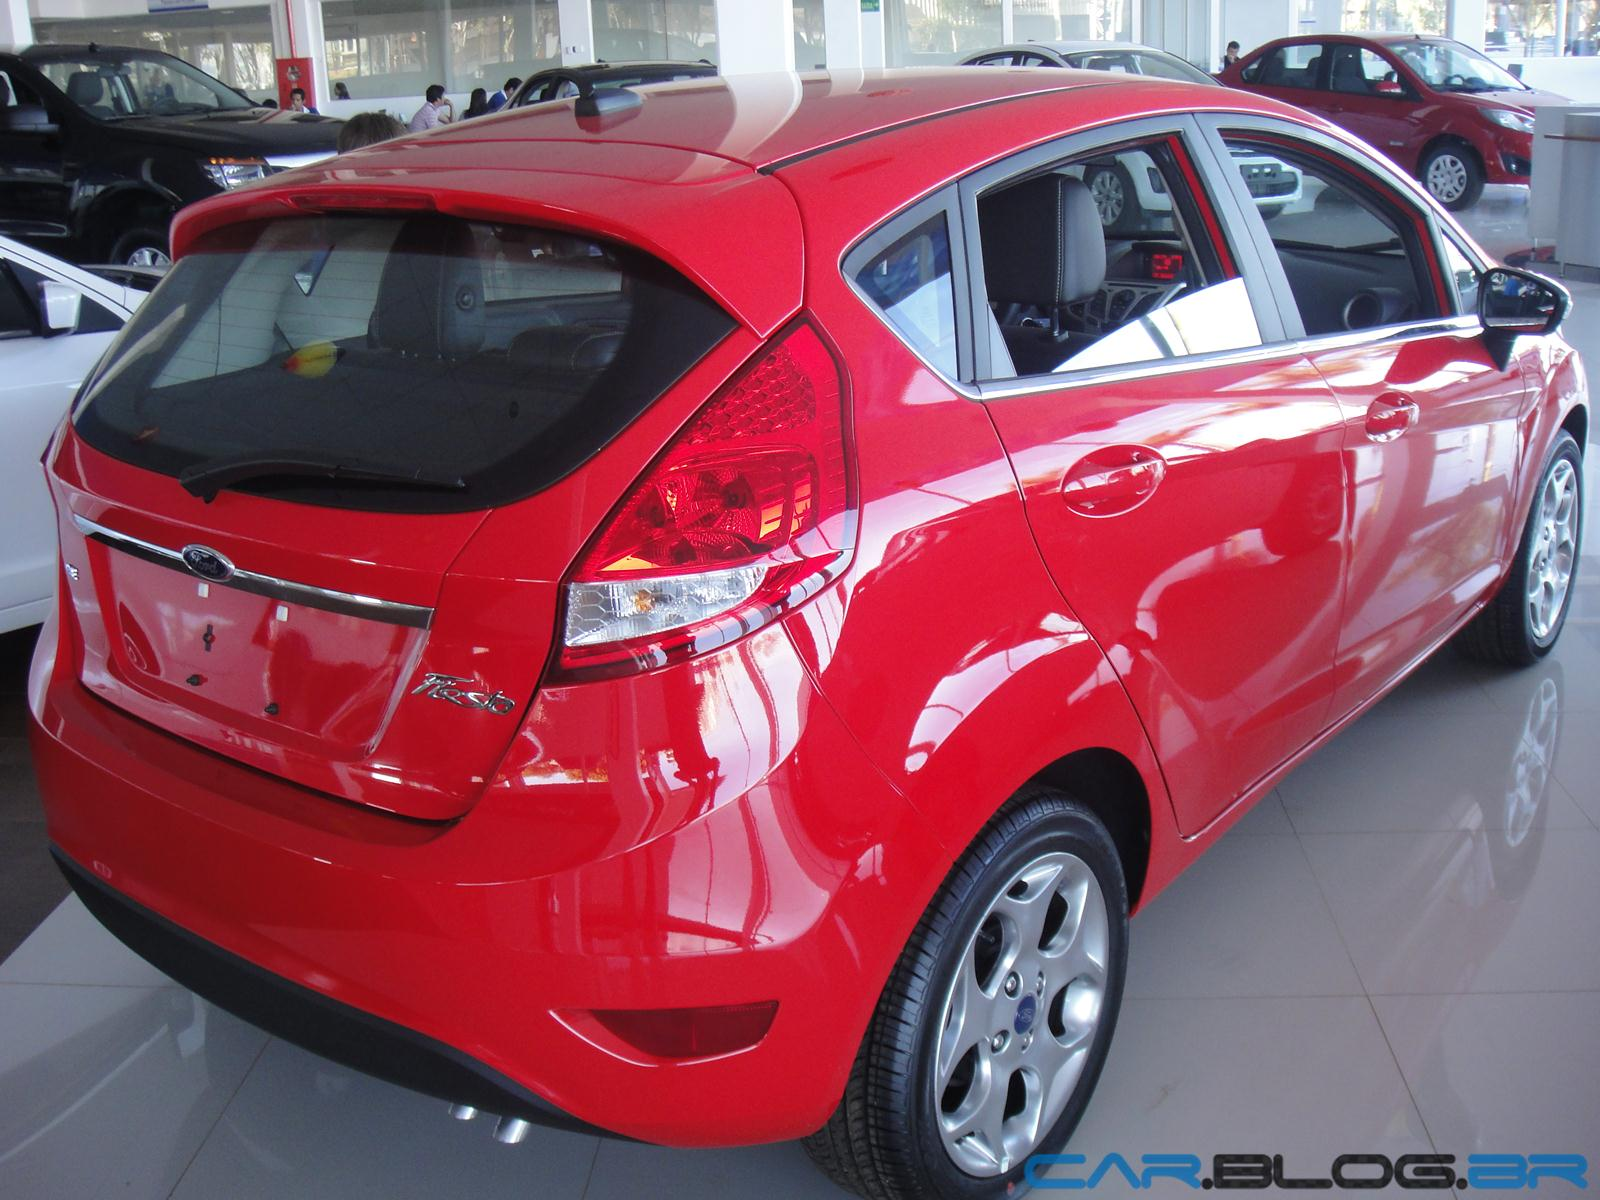 estilo do Ford New Fiesta Hatch é, para o segmento dos hatchs o que